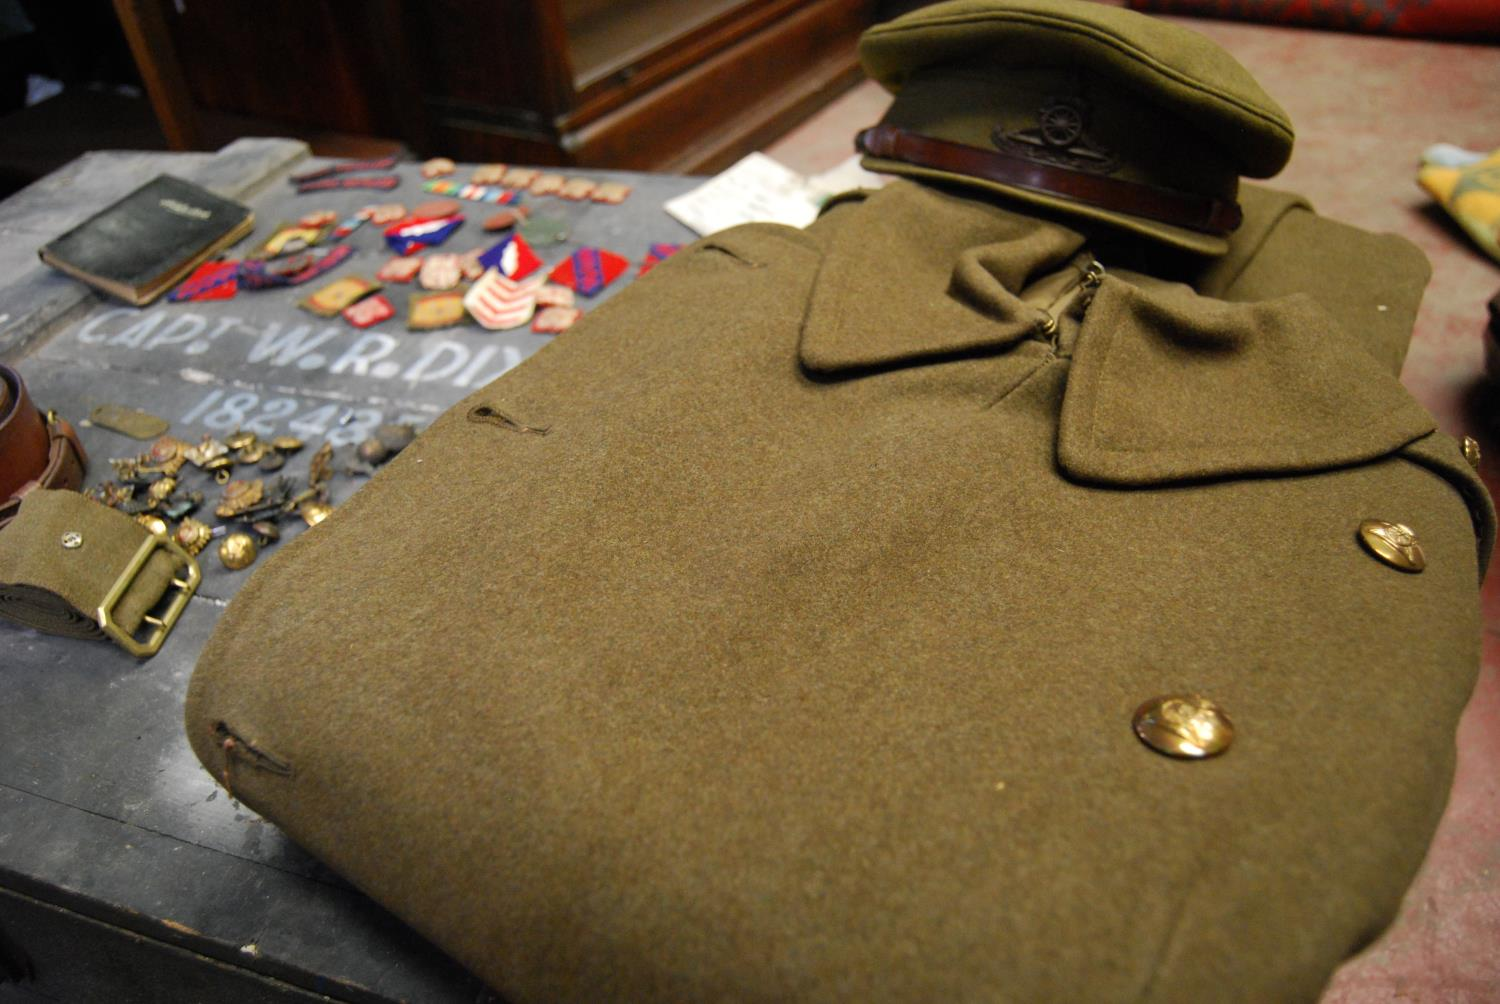 Military ephemera relating to Captain WR Dixon, 182485 Royal Artillery including cap, trench coat, - Image 4 of 5